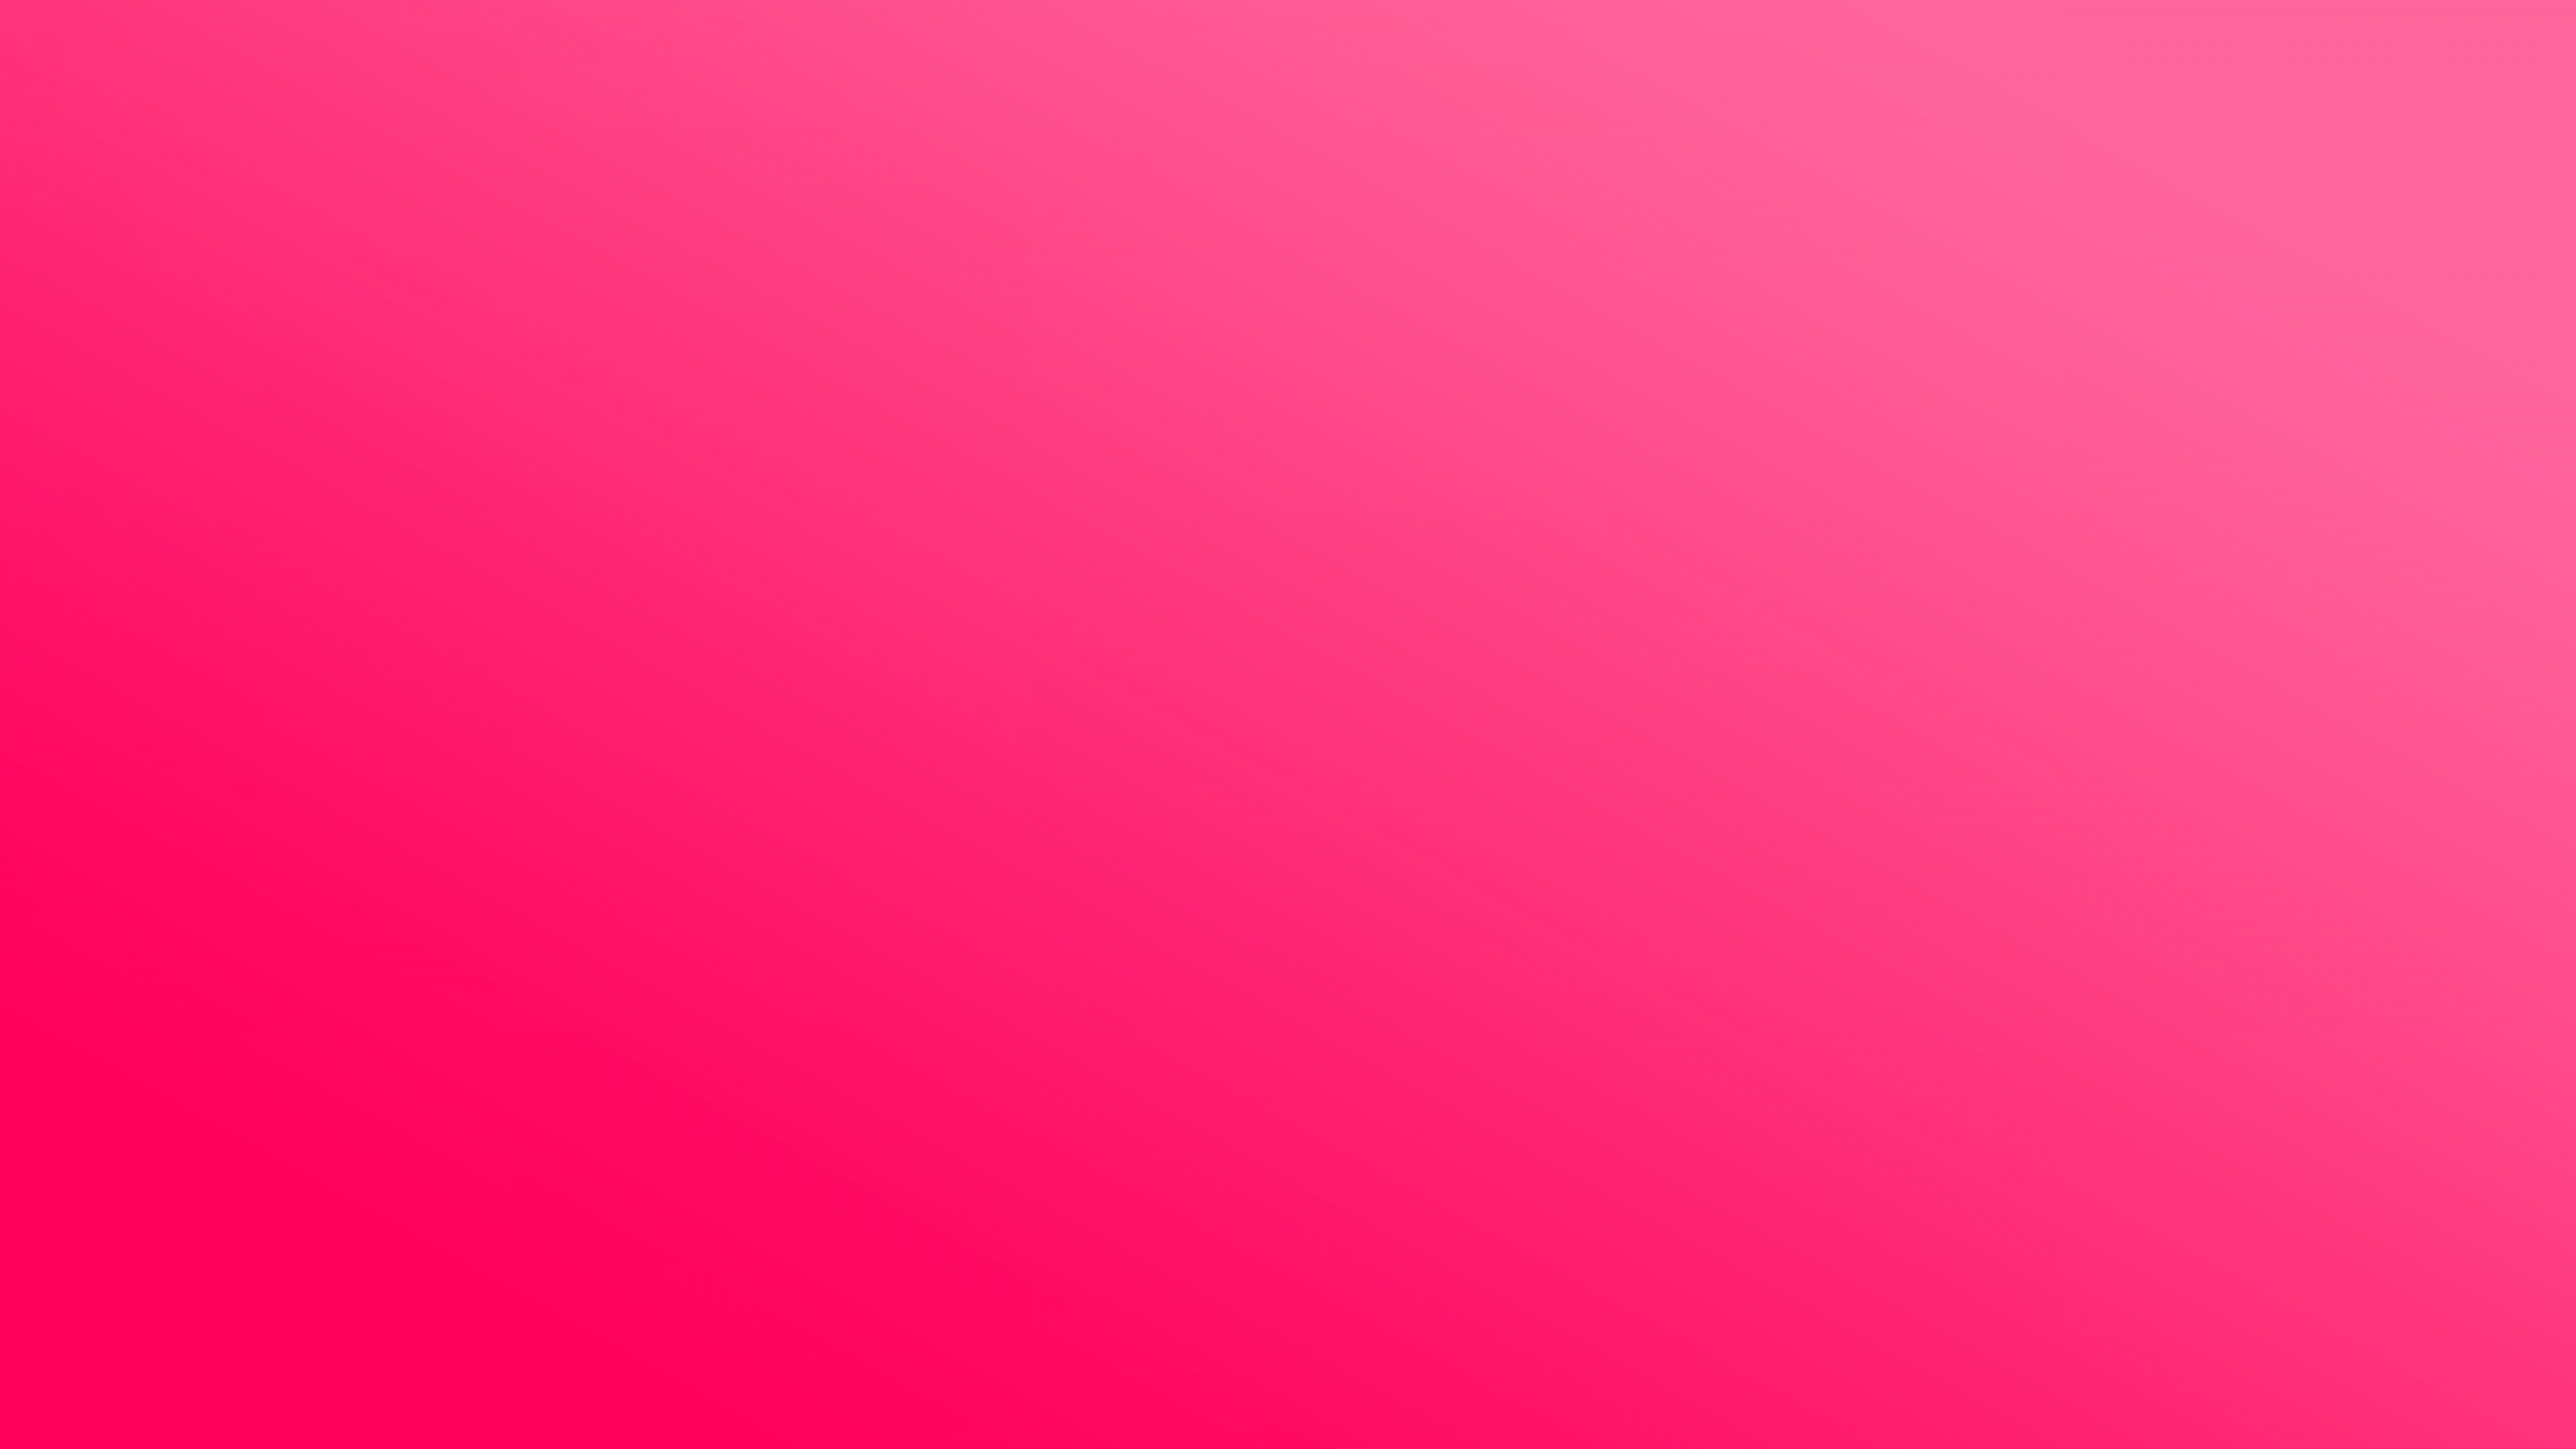 3840x2160 Preview wallpaper pink, solid, color, light, bright